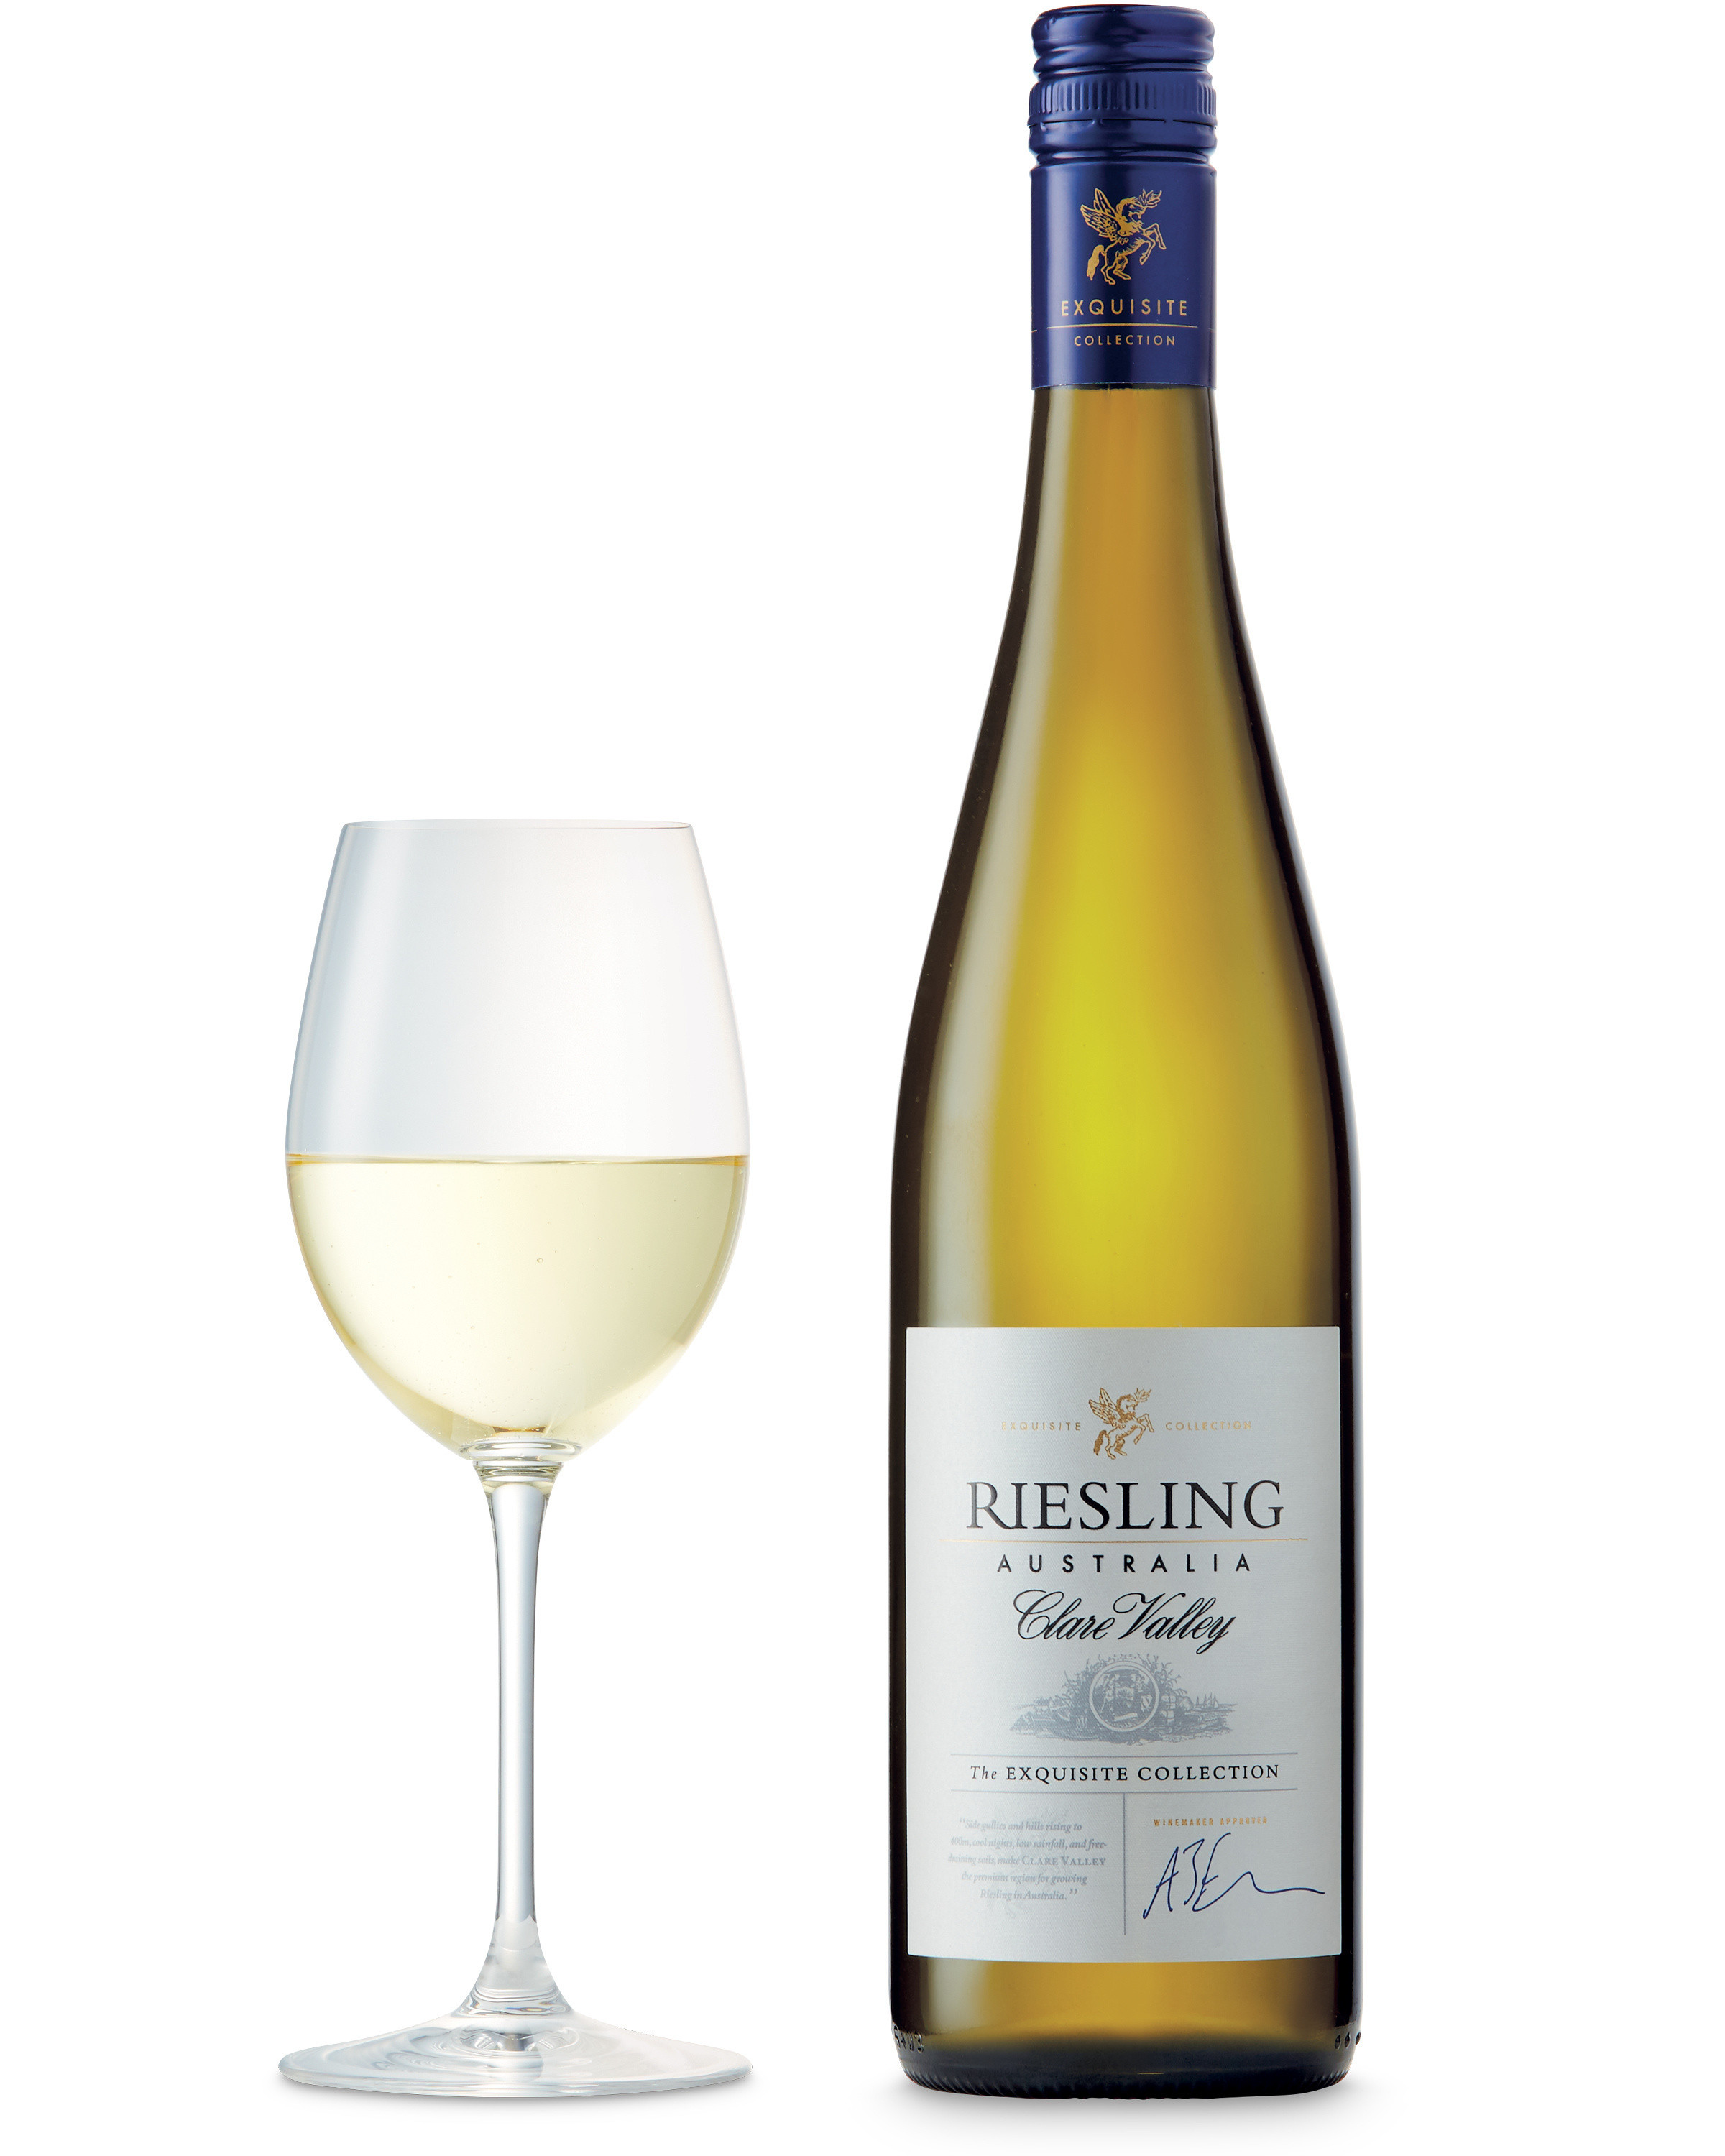 Aldi The Exquisite Collection Clare Valley Riesling 2014